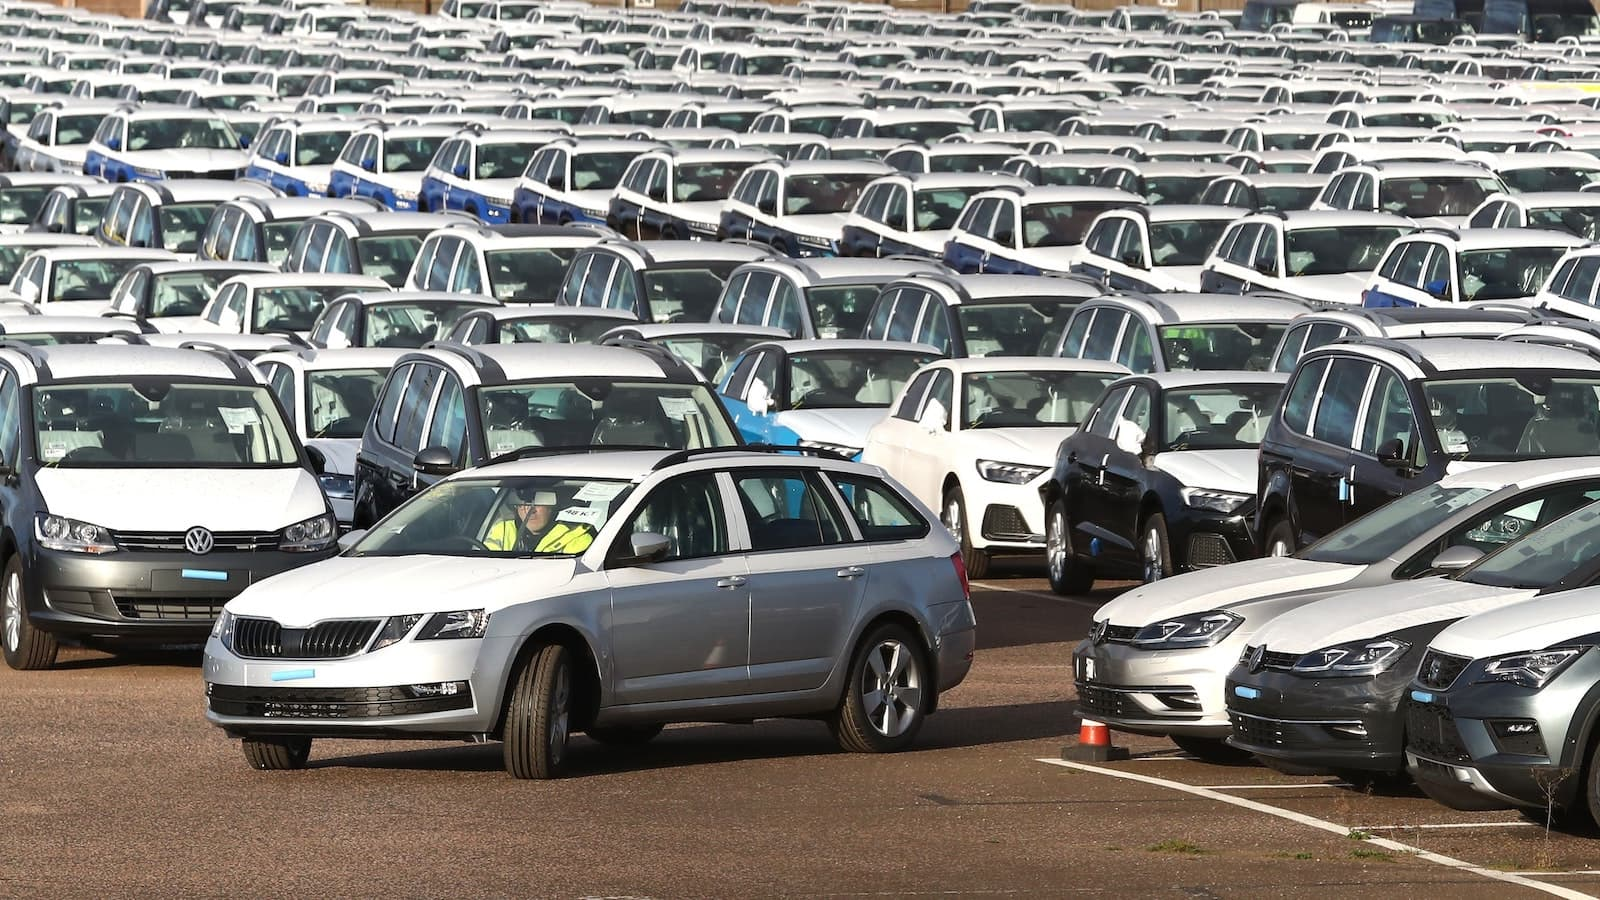 New car sales collapse across Europe - March 2020